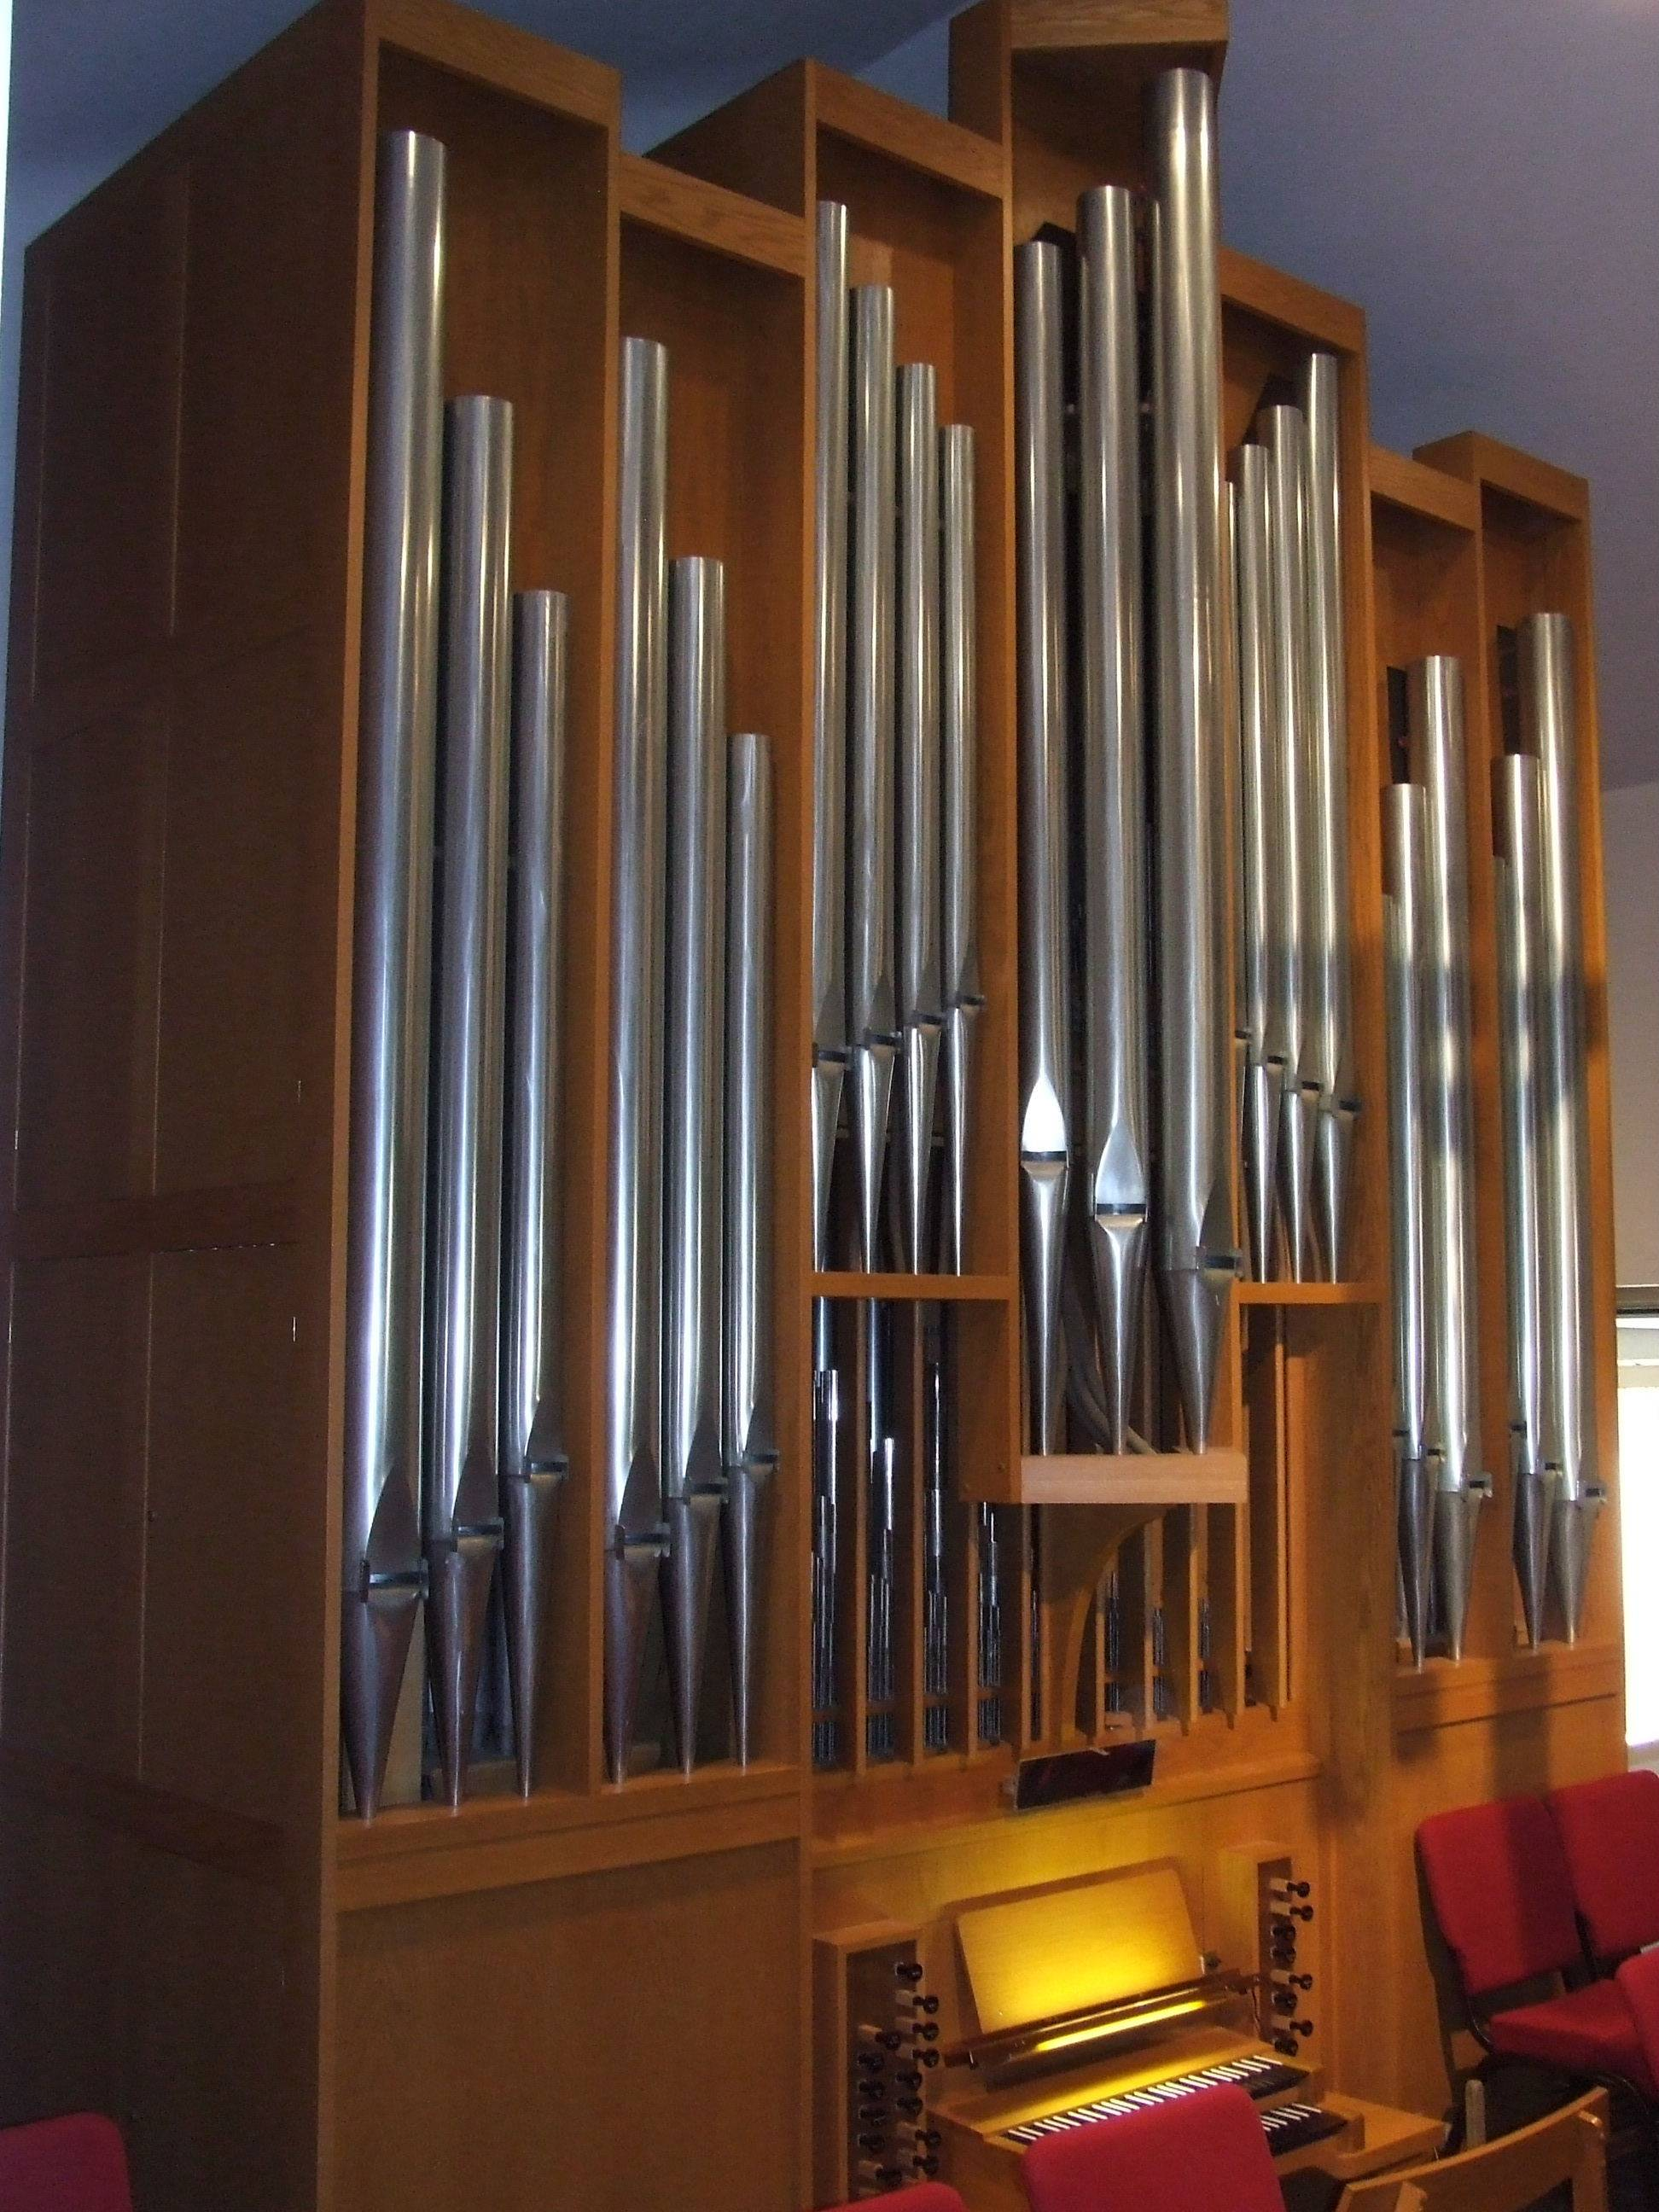 This is the 2 manual Zimmer tracker pipe organ at First Presbyterian Church, Elgin.